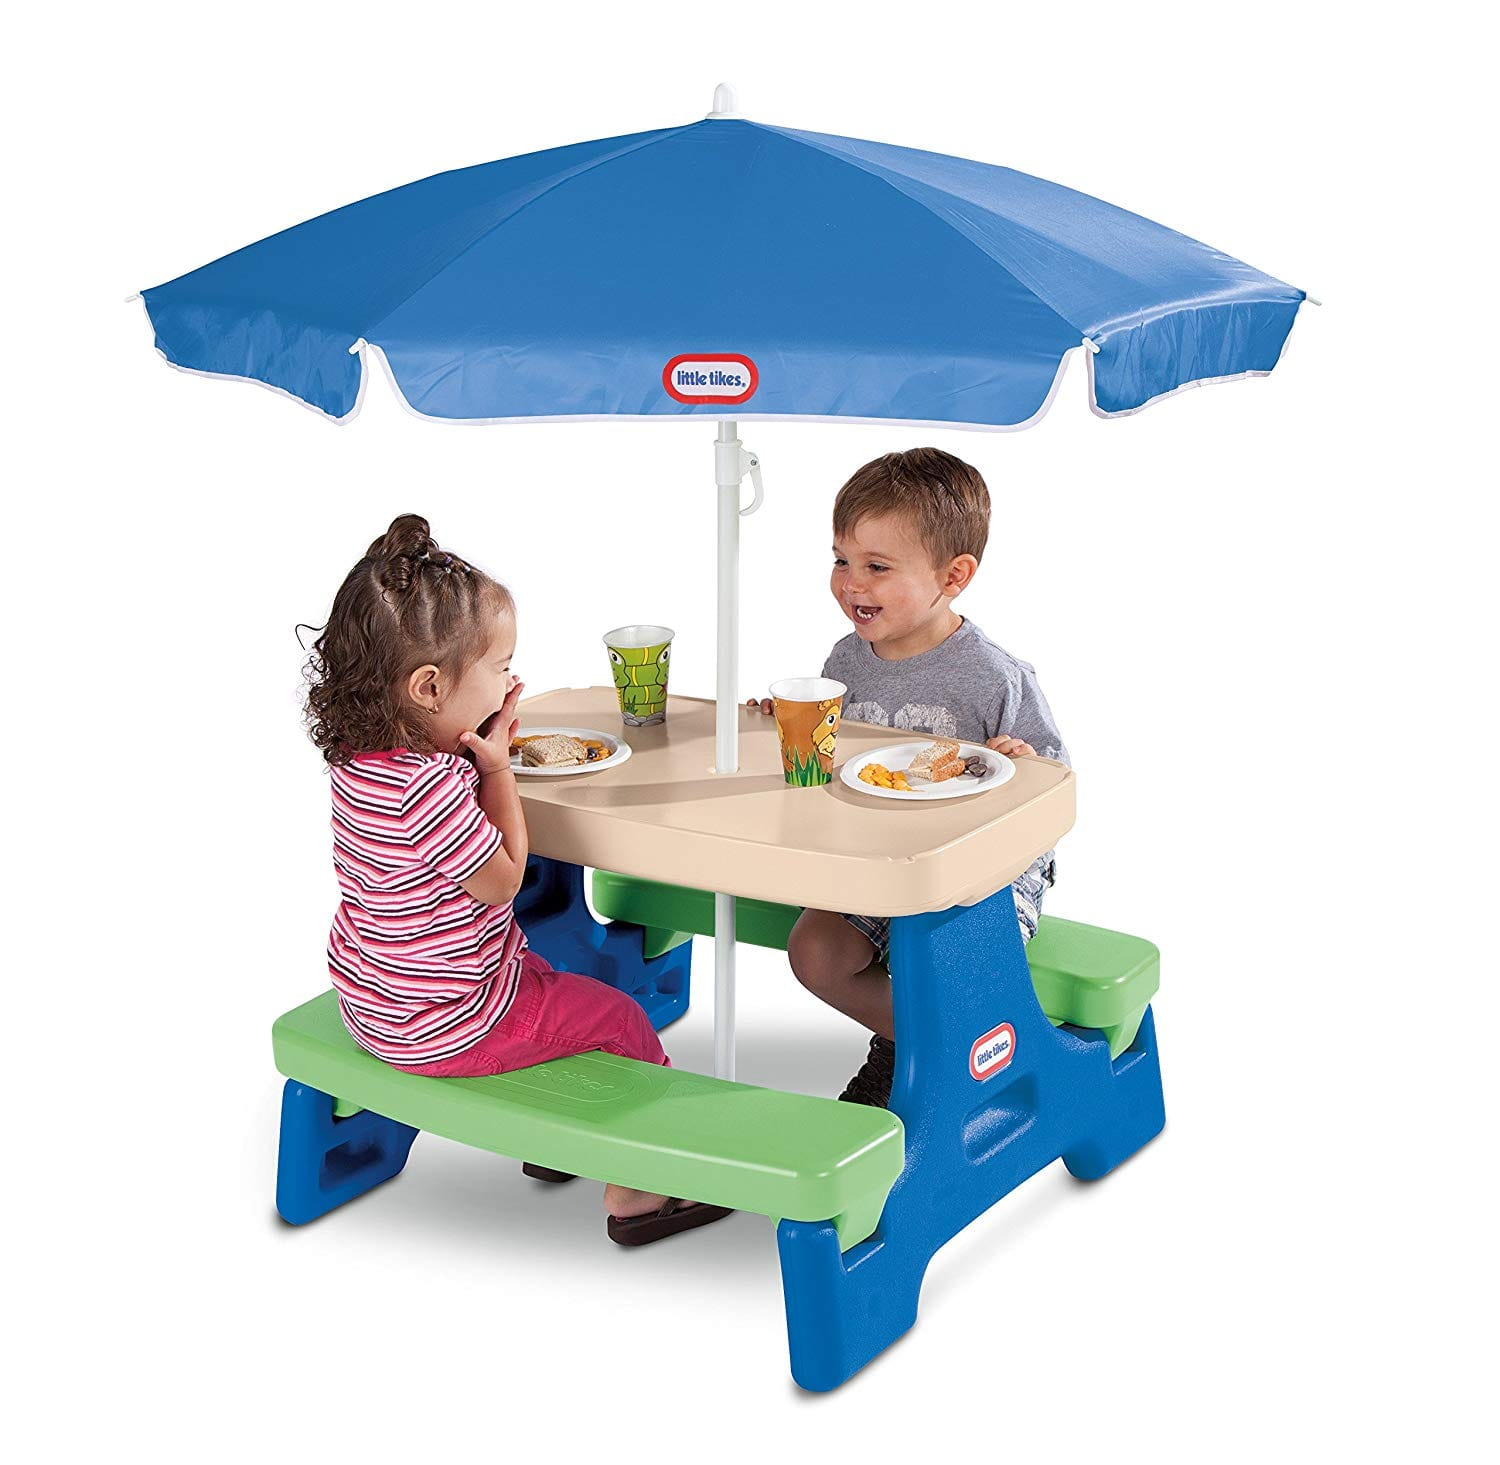 Little Tikes Easy Store Jr. Play Table with Umbrella $35